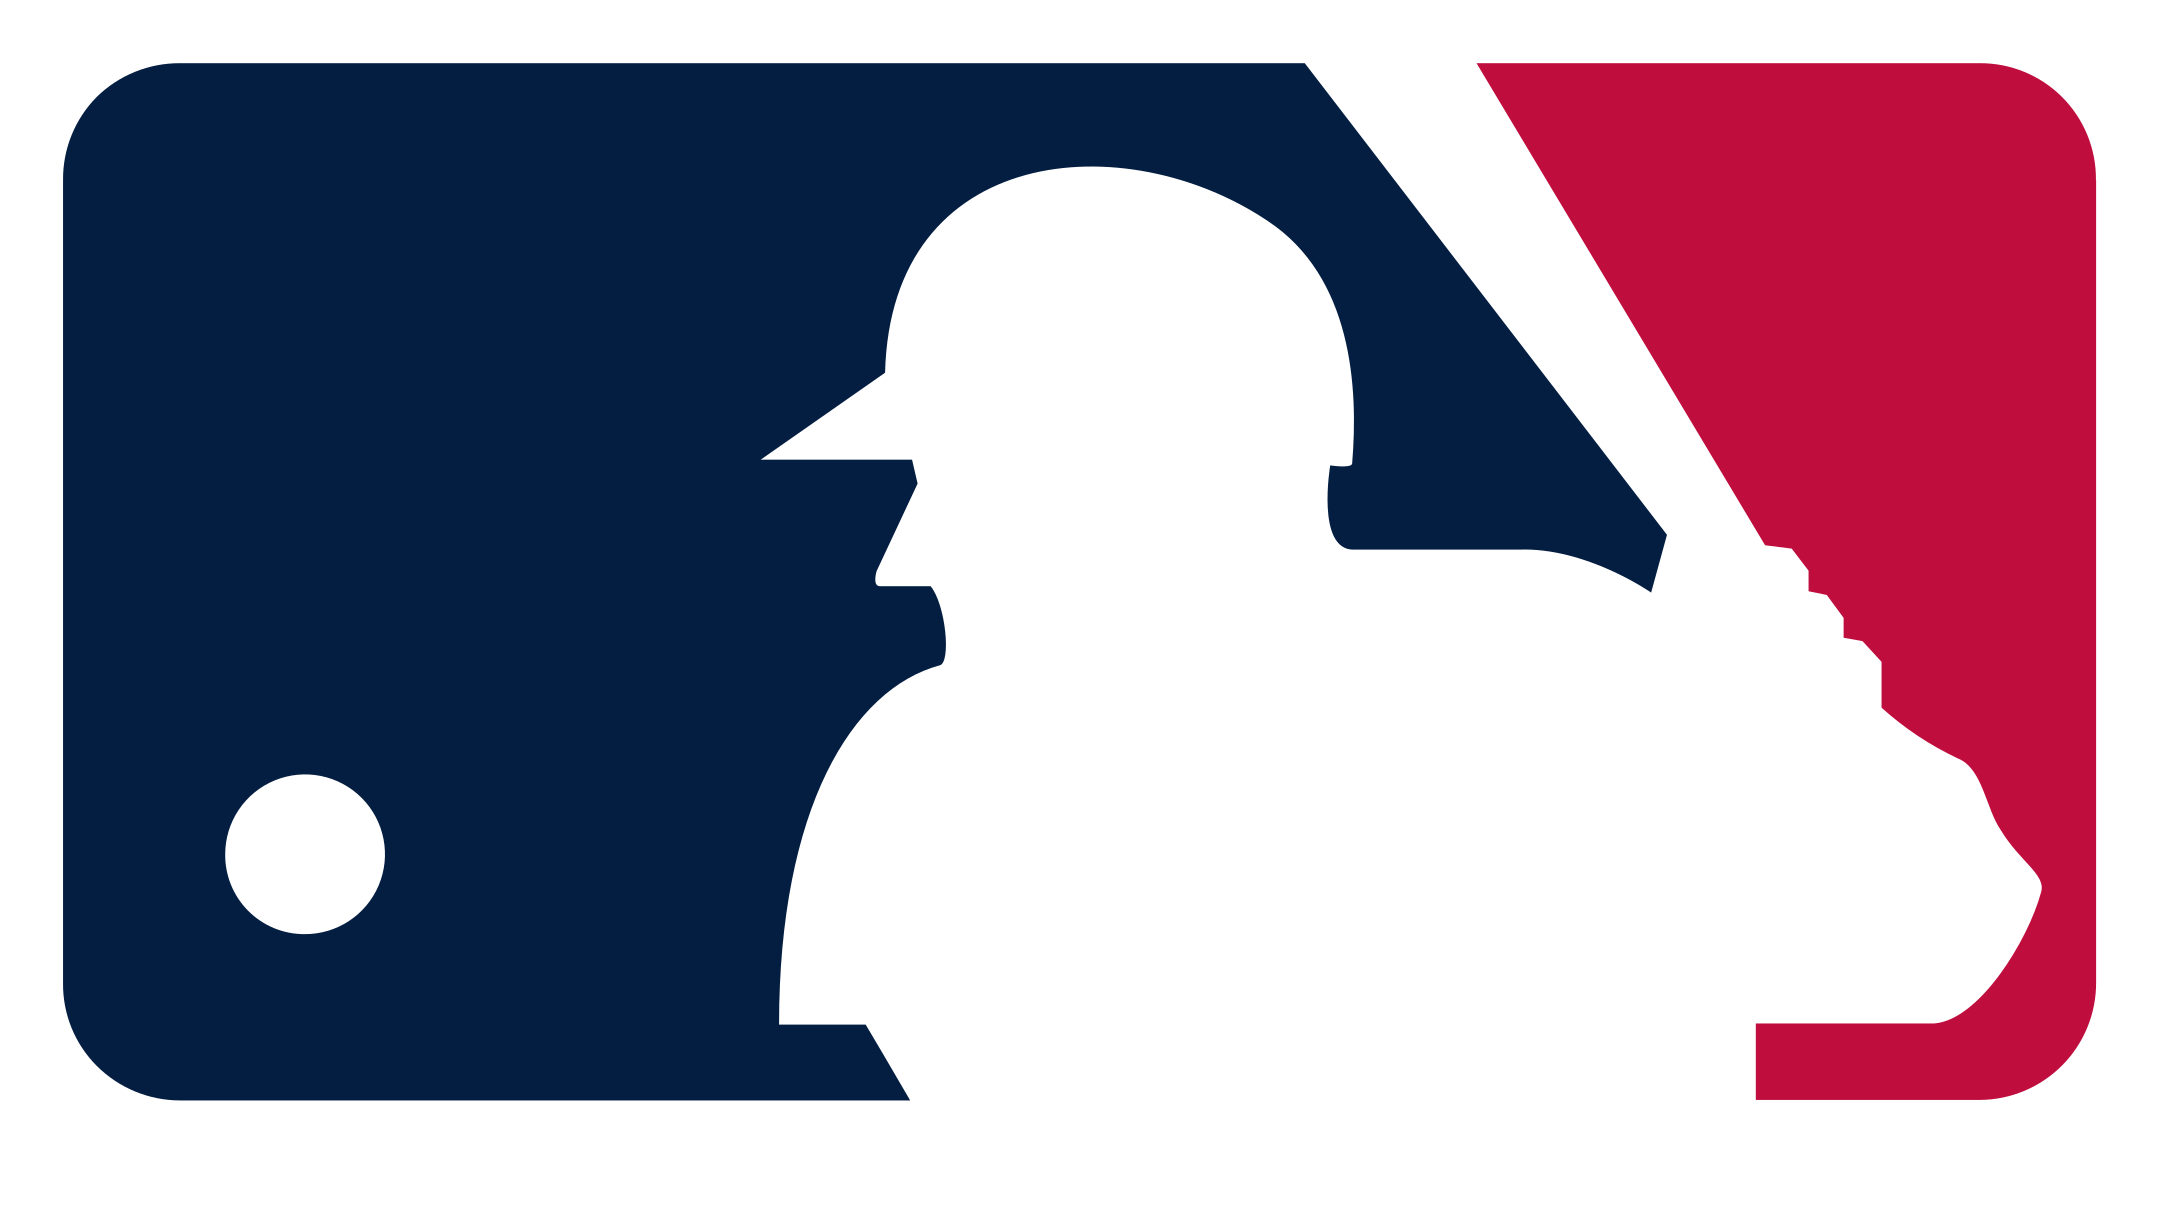 mlb logo 1 - MLB Logo - Major League Baseball Logo